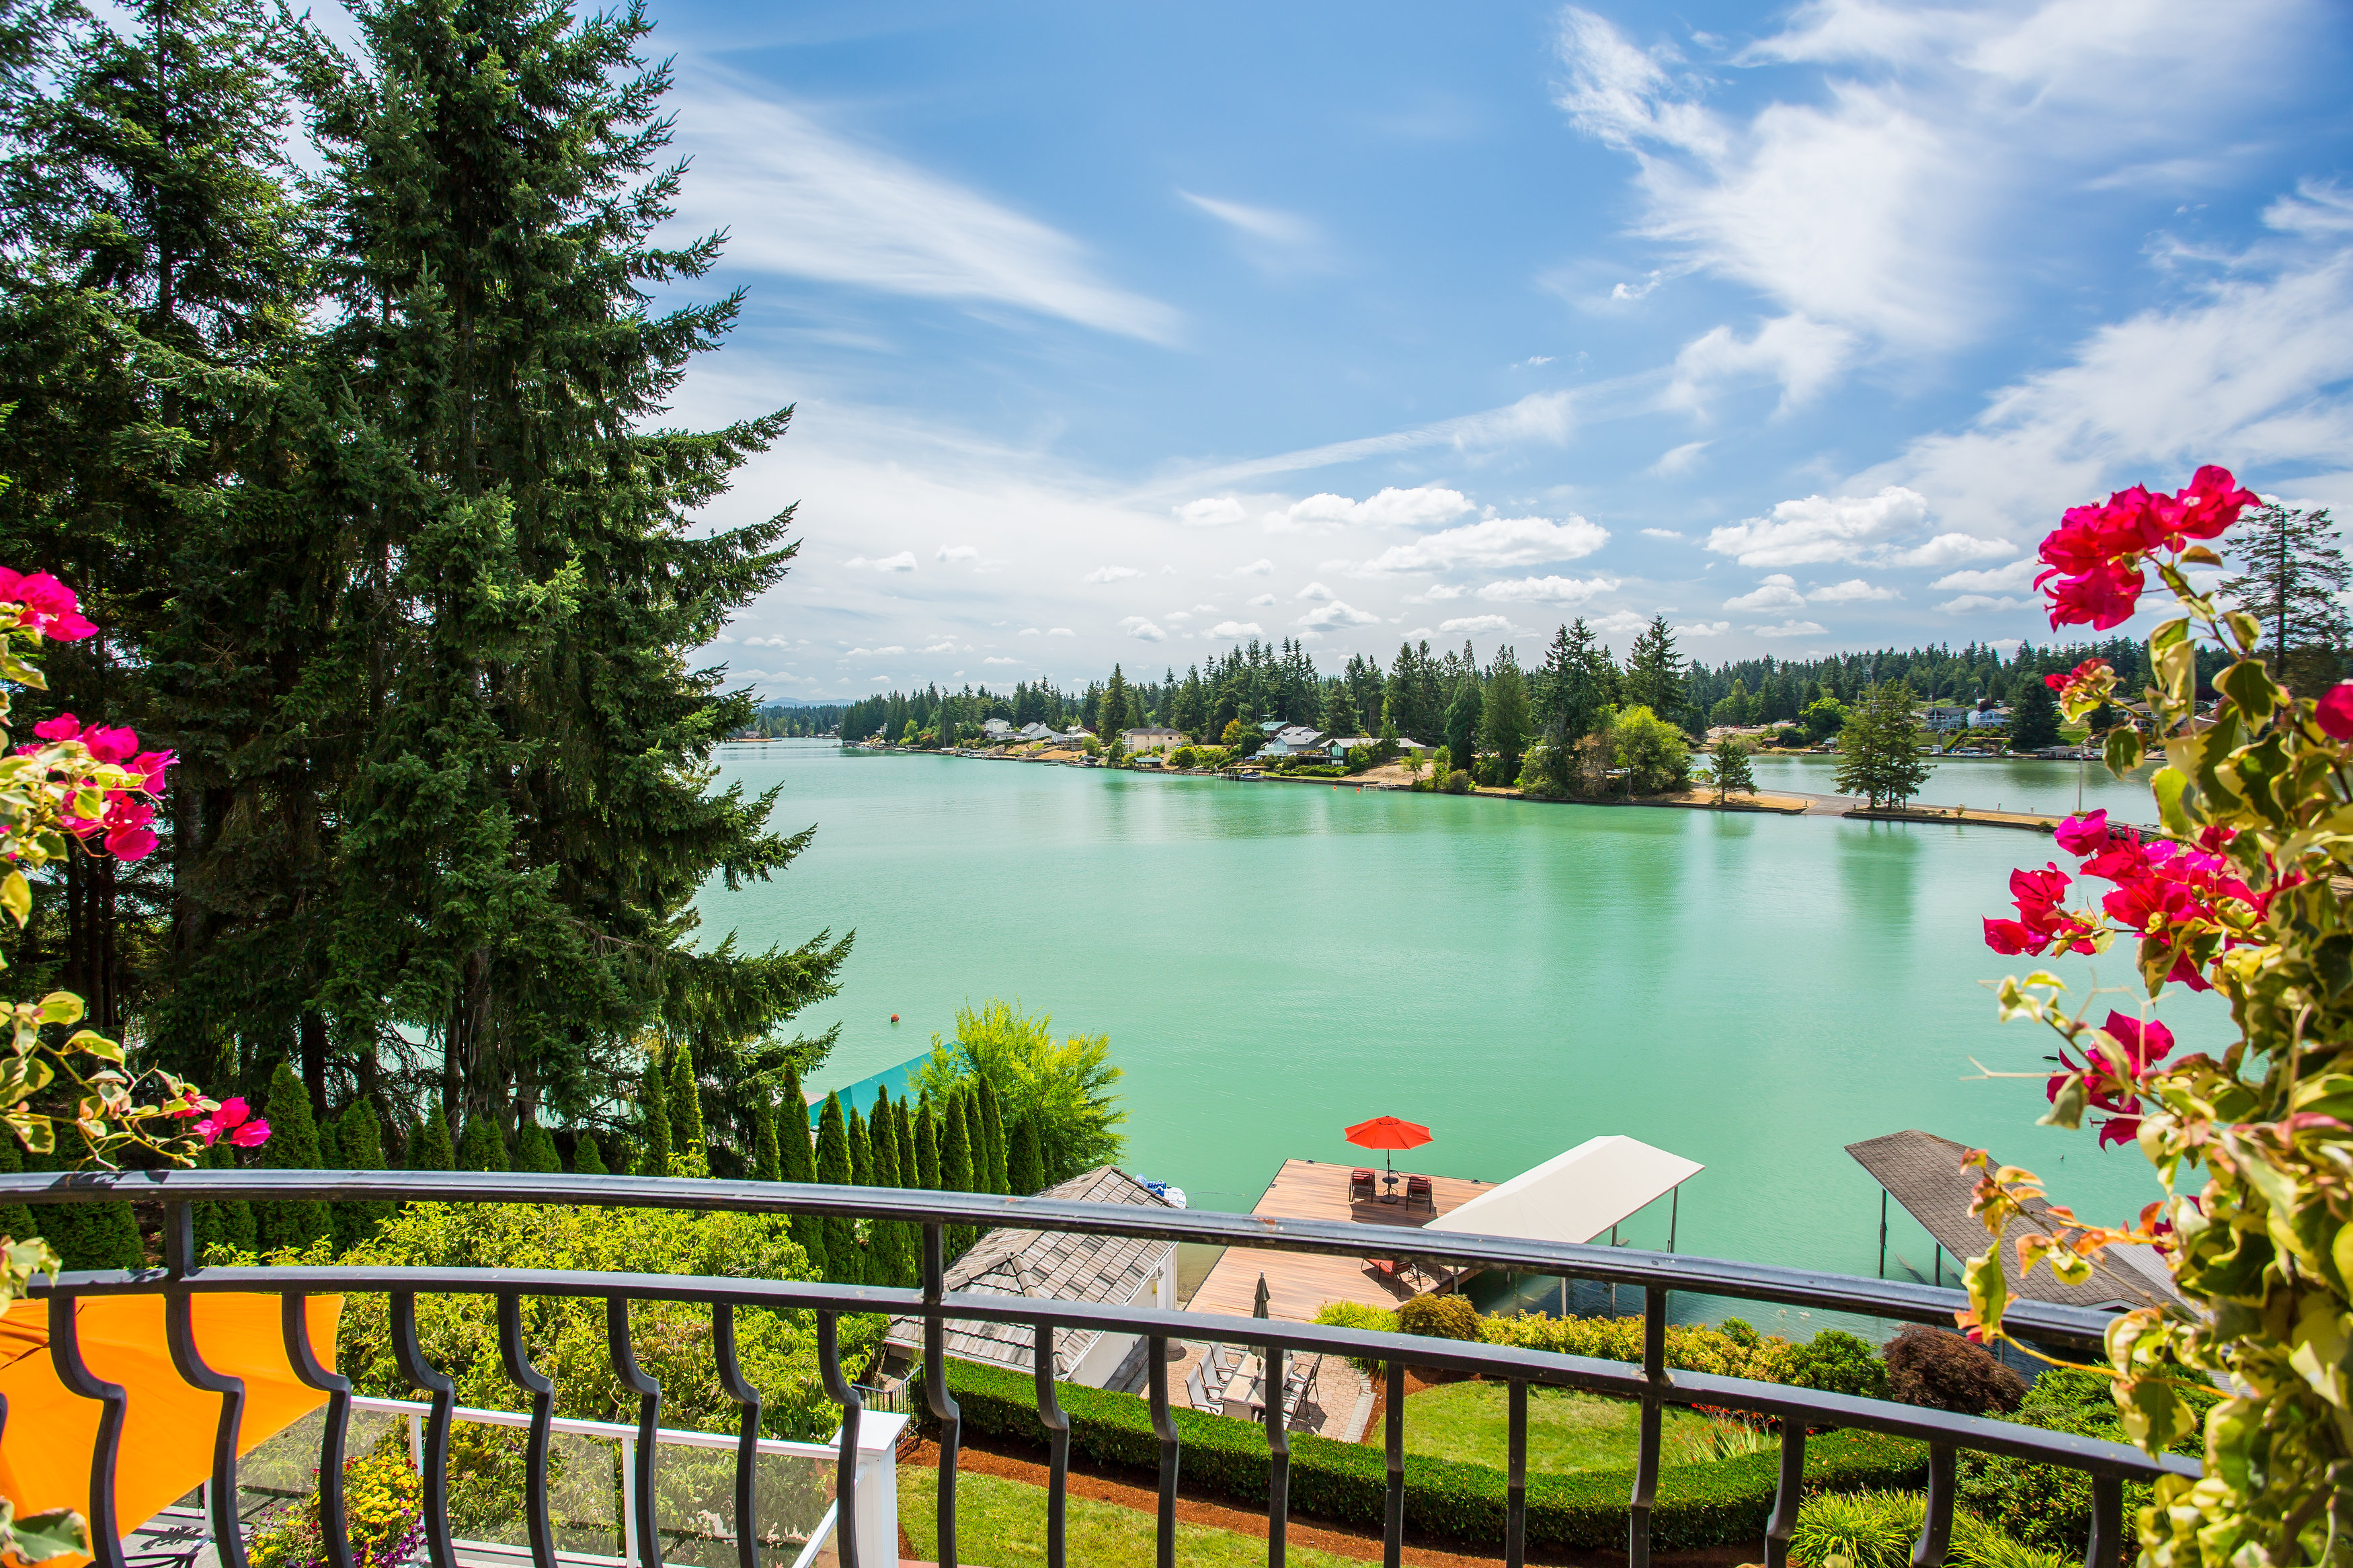 独户住宅 为 销售 在 Introducing Lake Tapps, WA Luxury Waterfront 18006 28th St E Lake Tapps, 华盛顿州 98391 美国